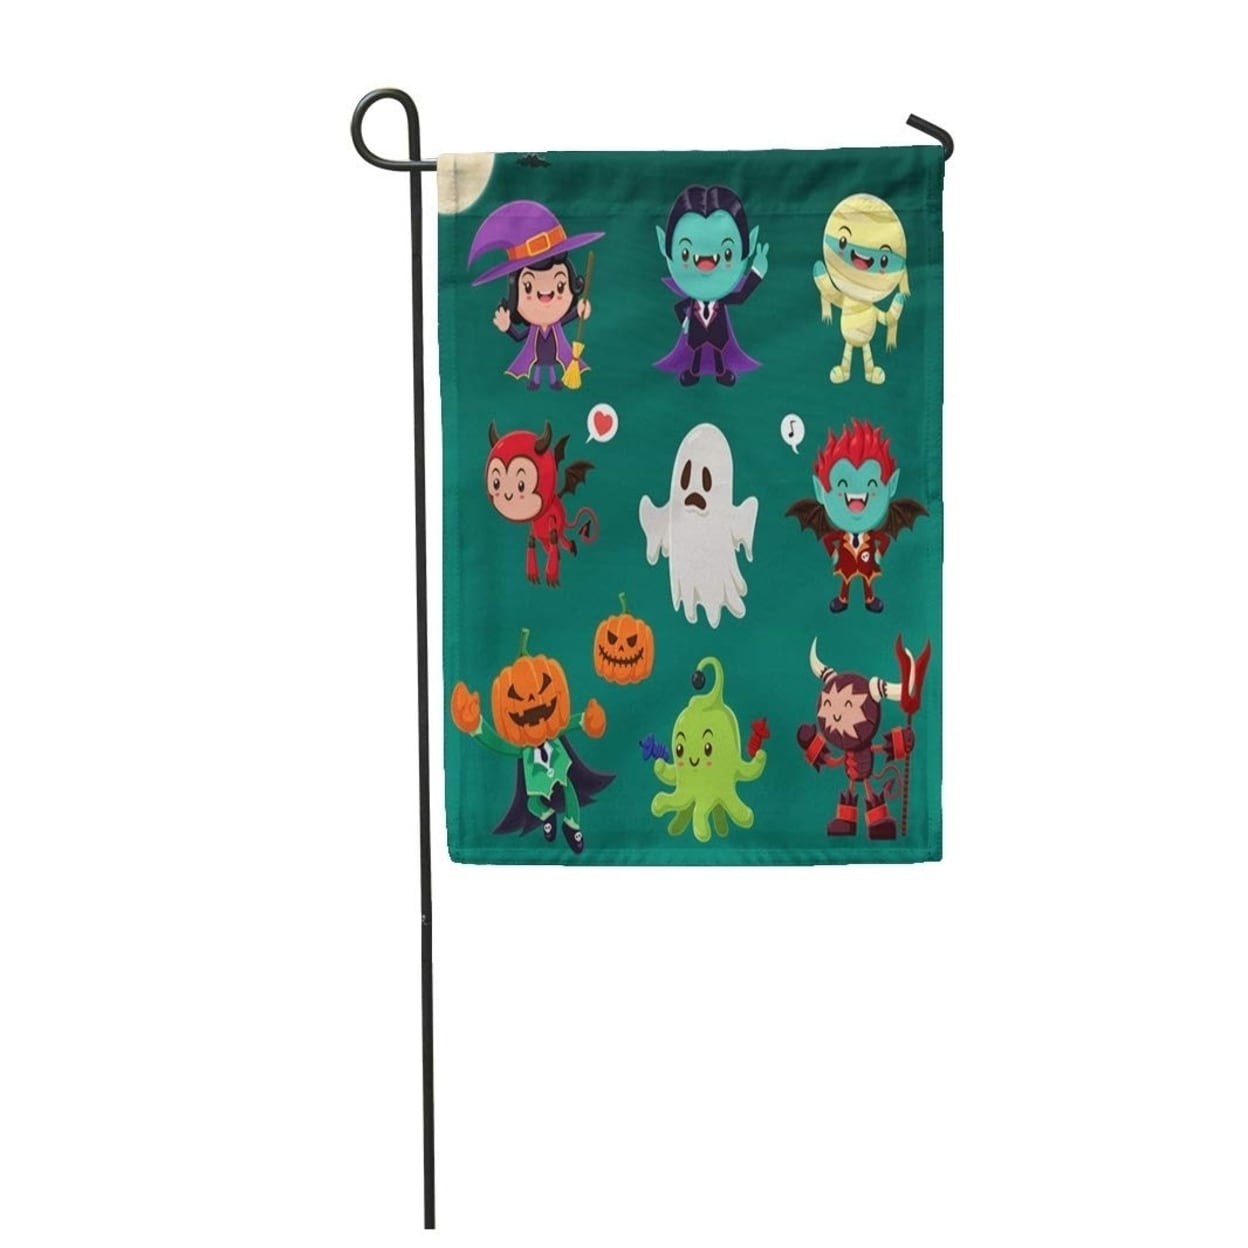 Vintage Halloween Demon Witch Vampire Mummy Ghost Alien Monster Garden Flag Decorative Flag House Banner 12x18 Inch On Sale Overstock 31343733 This wiki is still developing, so feel free to help out. overstock com